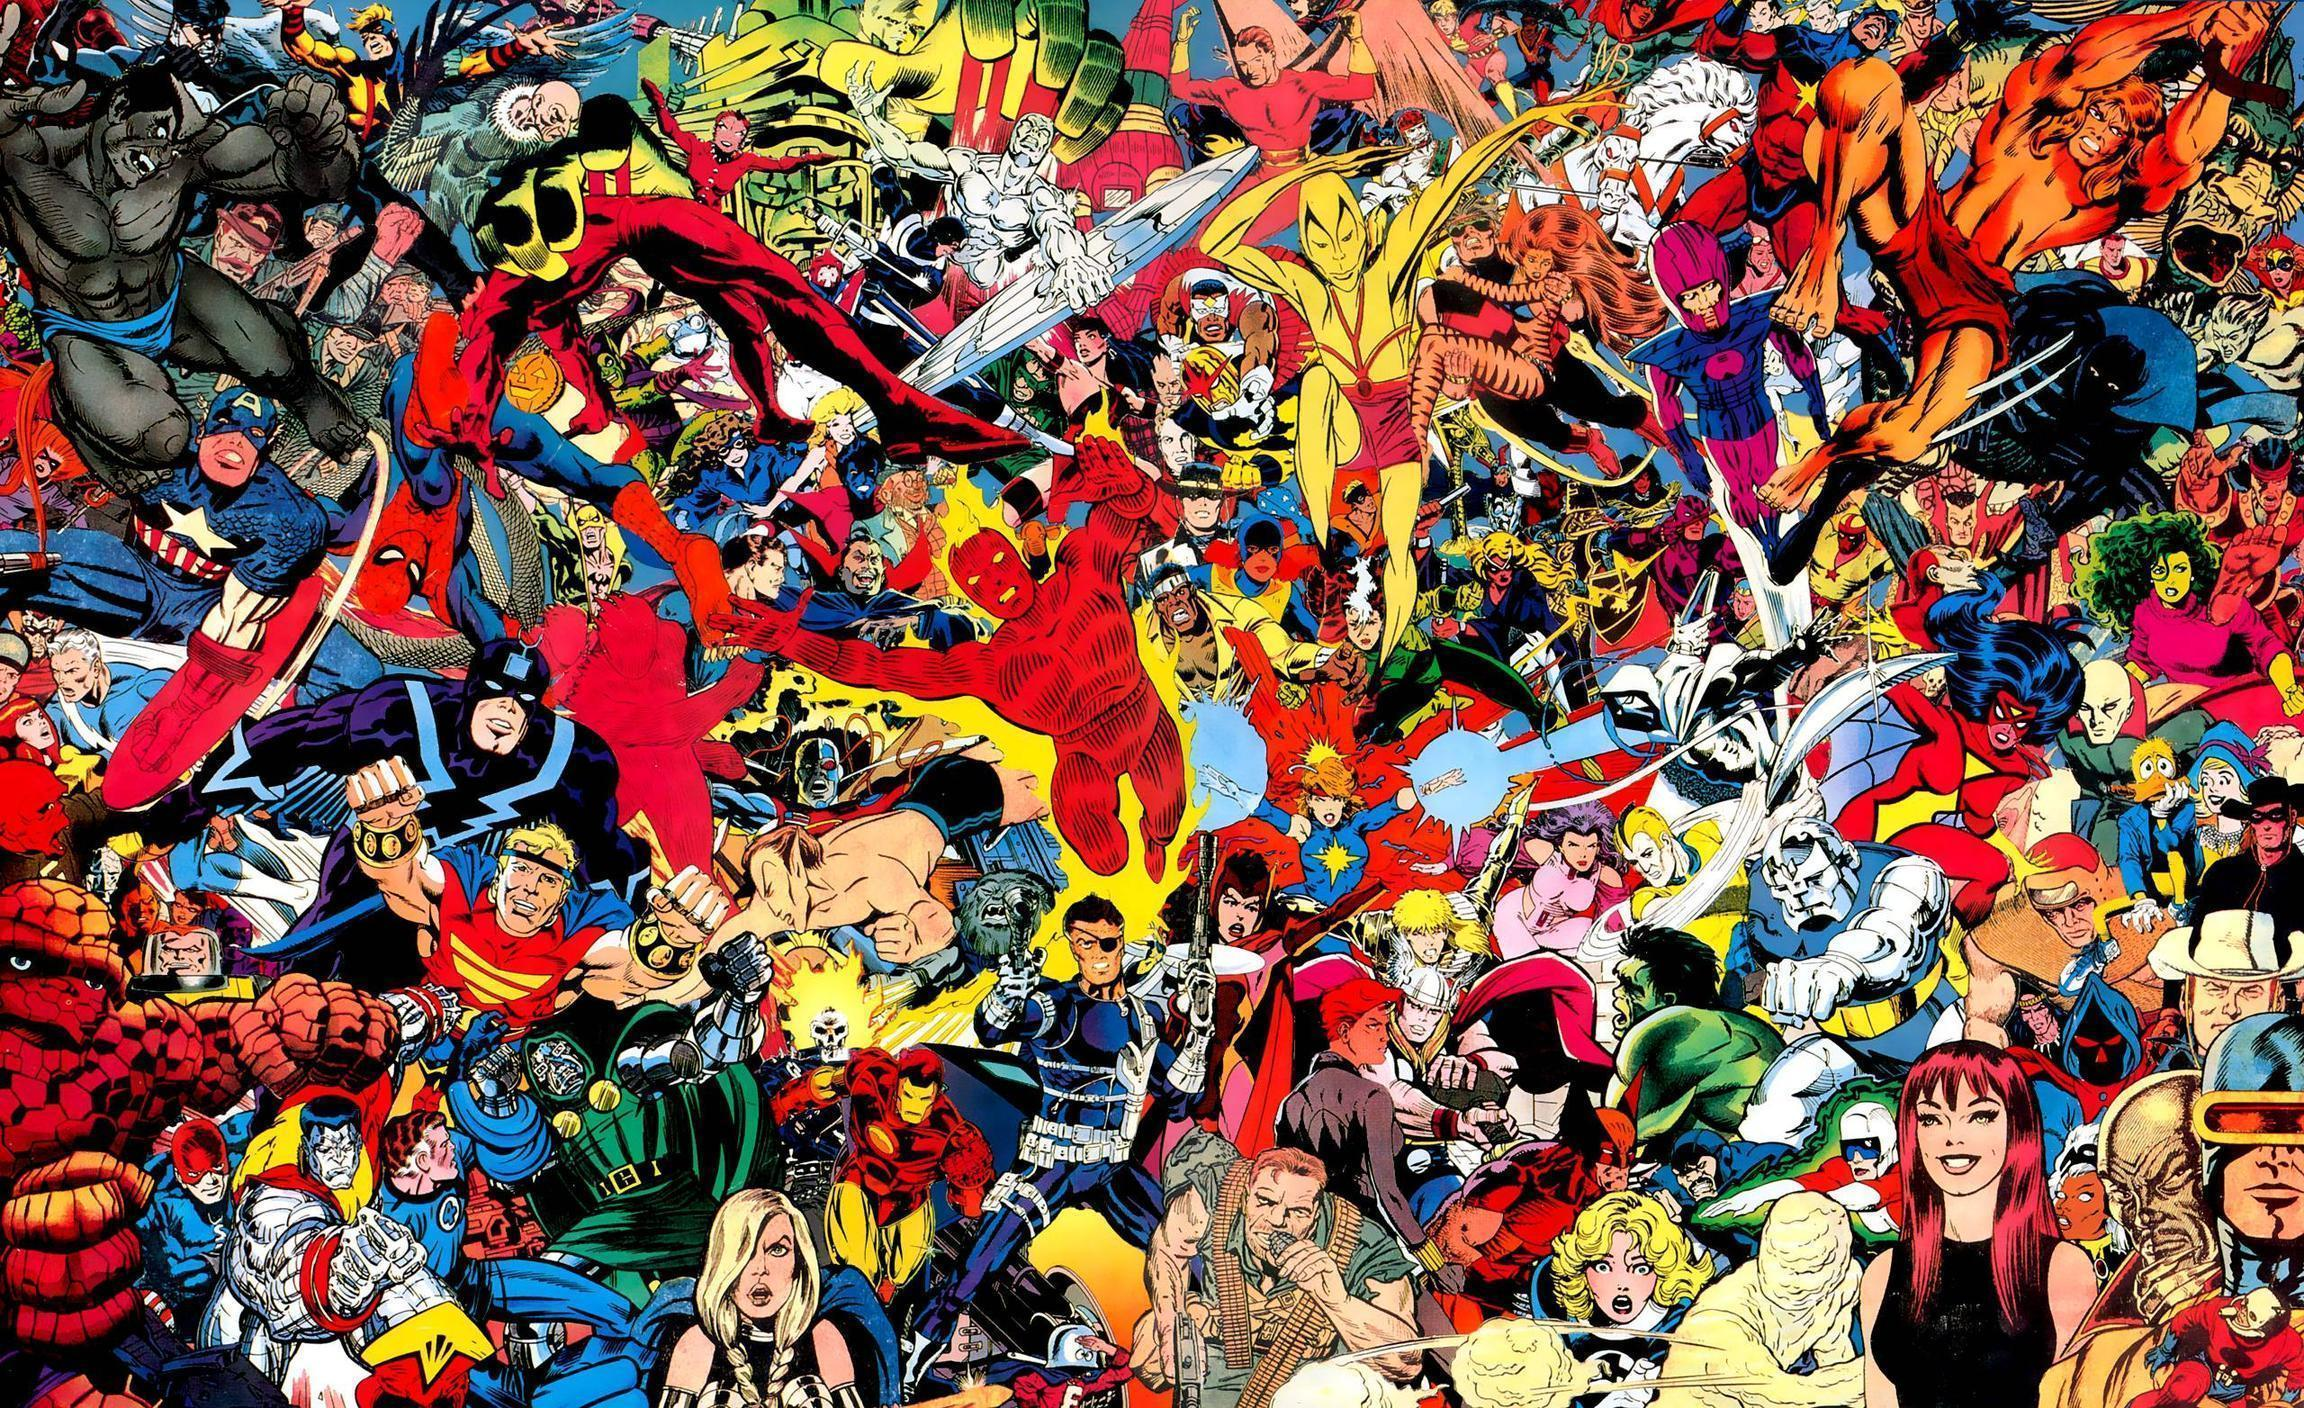 Download 1920×1080 Marvel Wallpaper To Give Your Computer A New Look